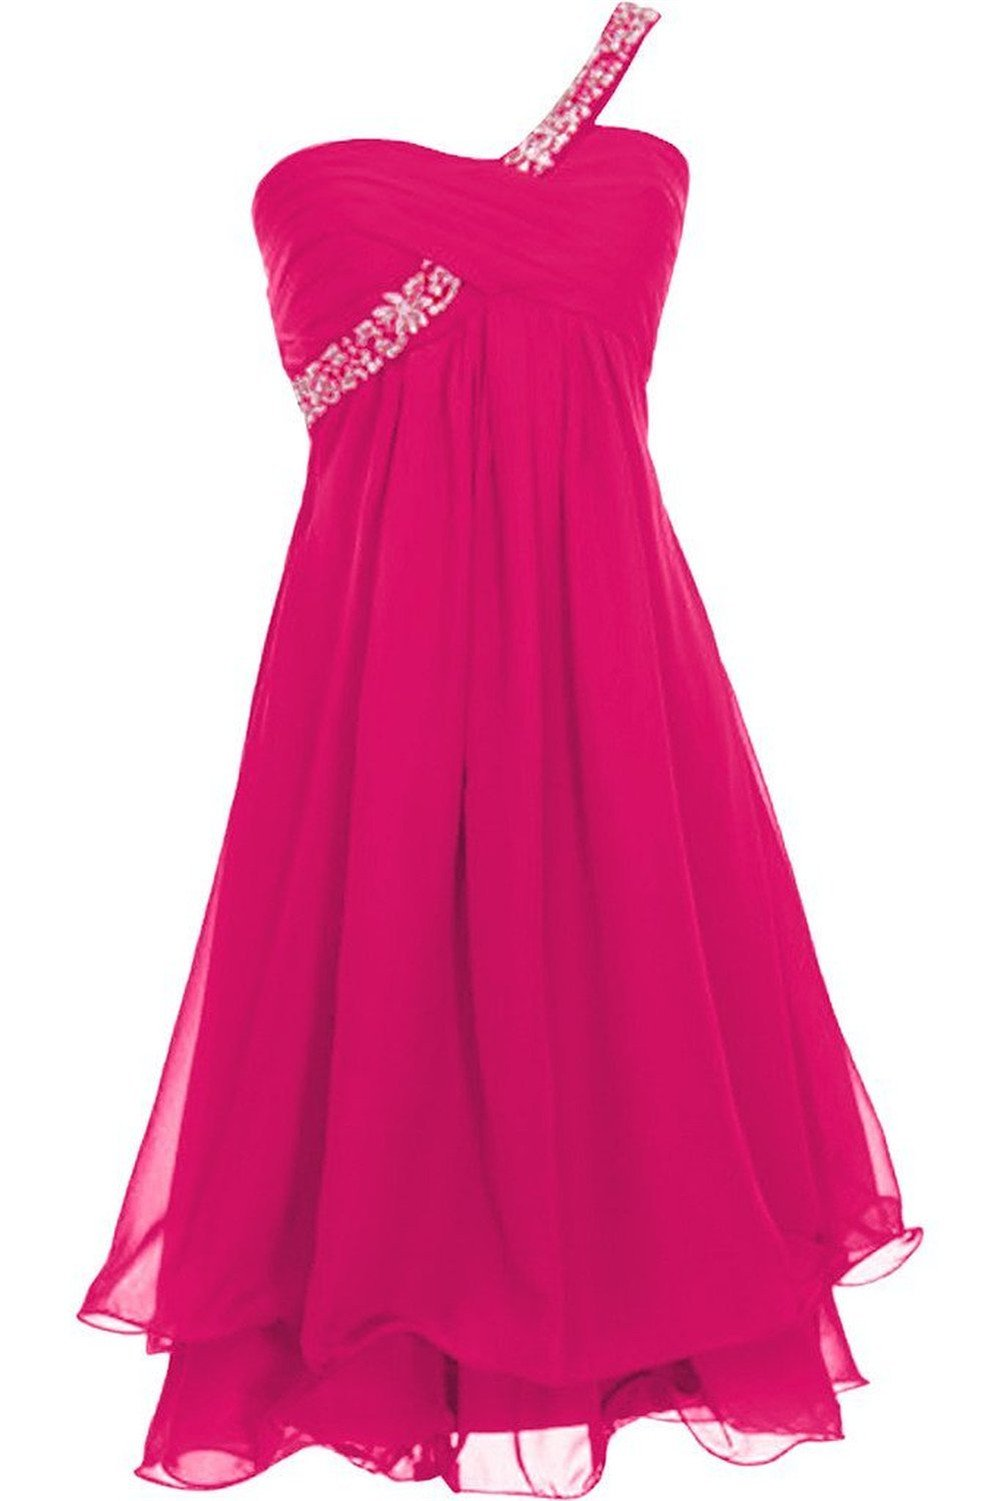 CoutureBridal One Shoulder Bridesmaid Dress,Chiffon Cocktail Dress Magenta-US14